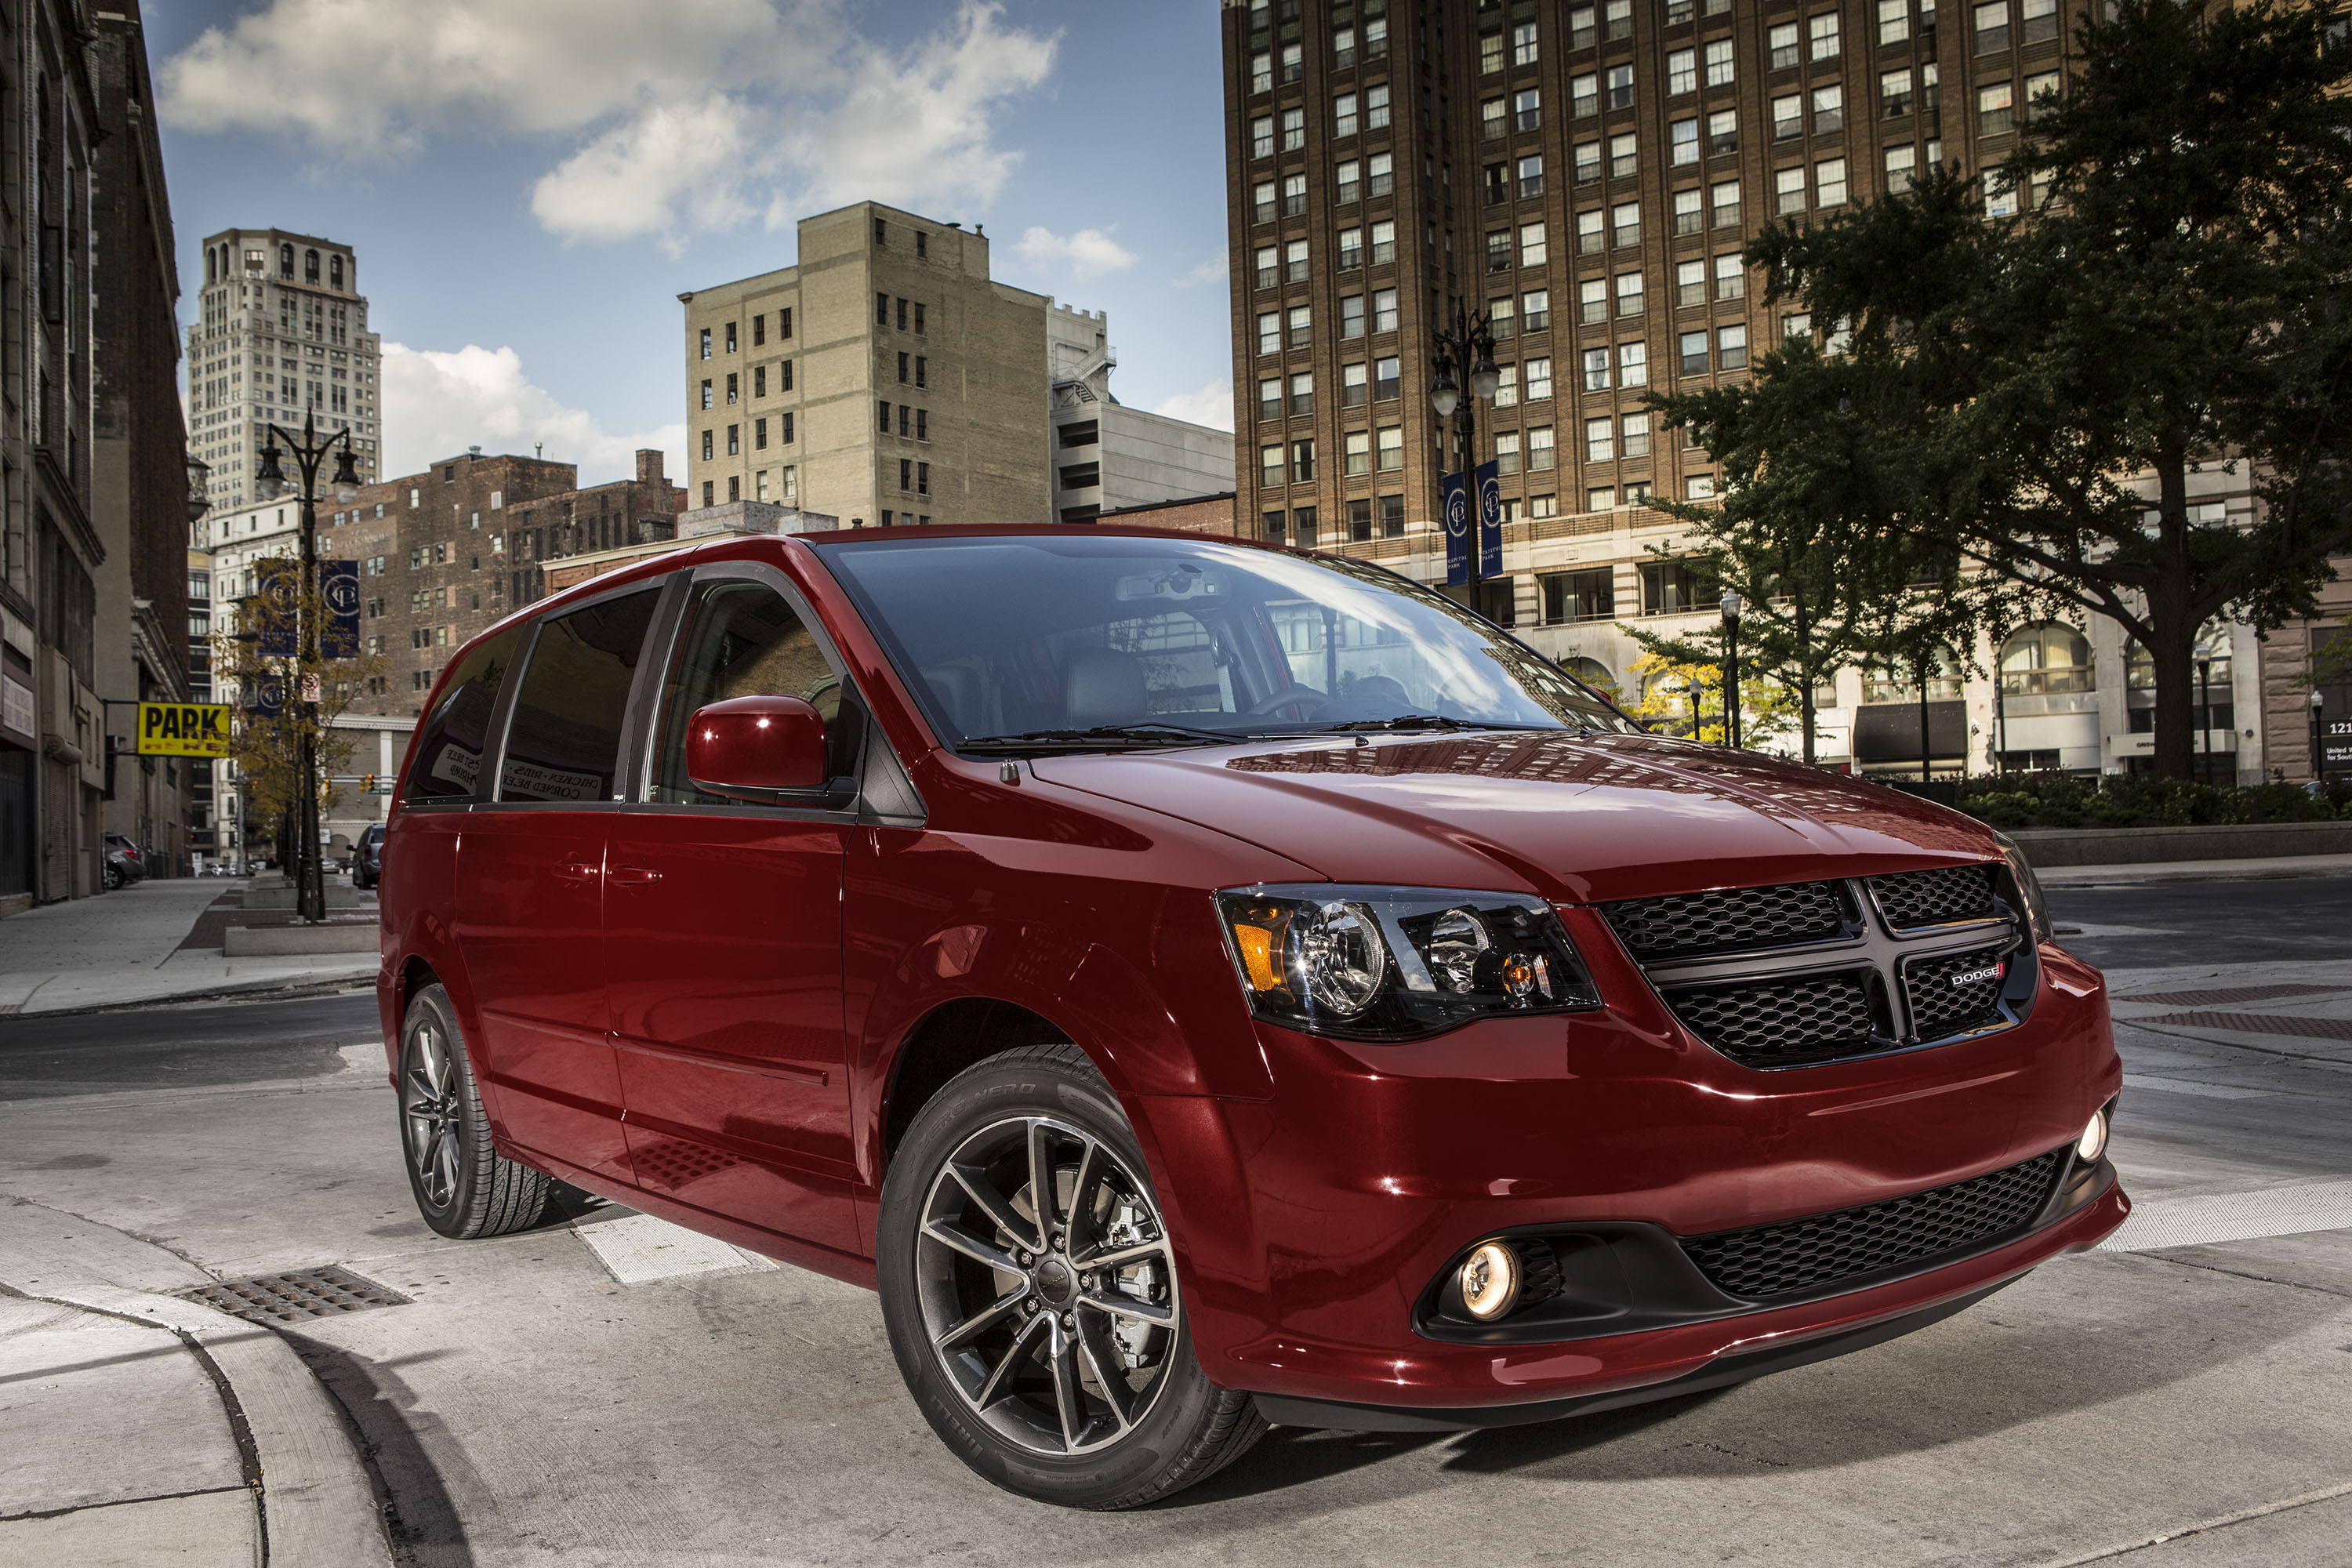 2018 Dodge Grand Caravan Review, Ratings, Specs, Prices ...